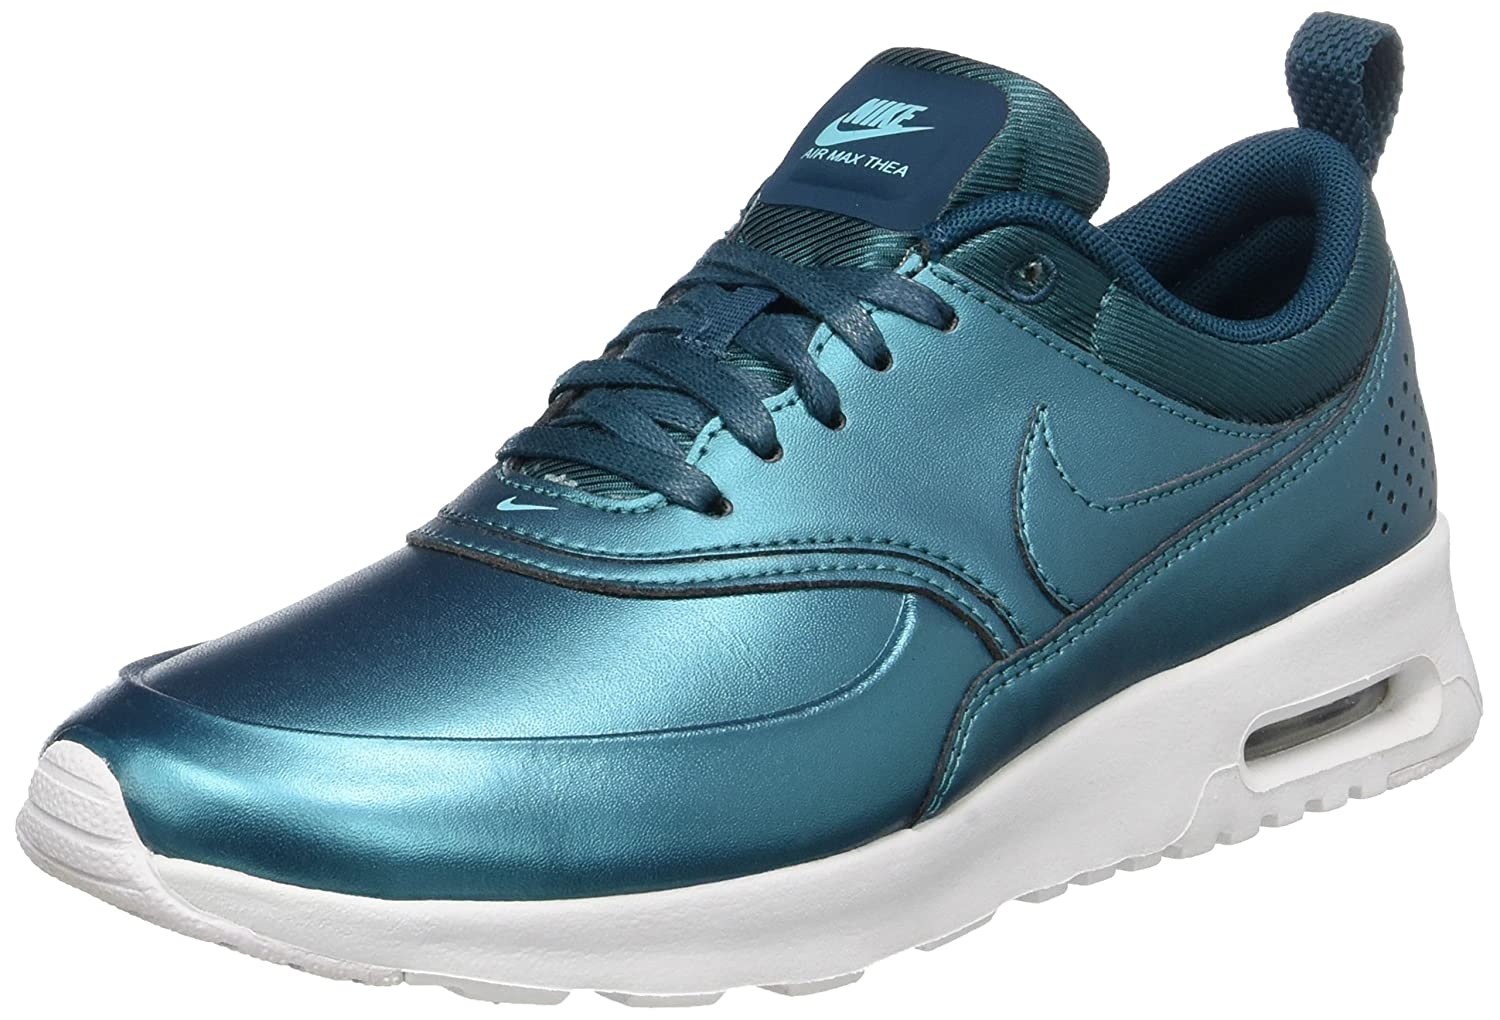 NIKE Women's Air Max Thea SE Running Shoe B01M2YEGWC 6.5 M US|Metallic Dark Sea / Metallic Dark Sea